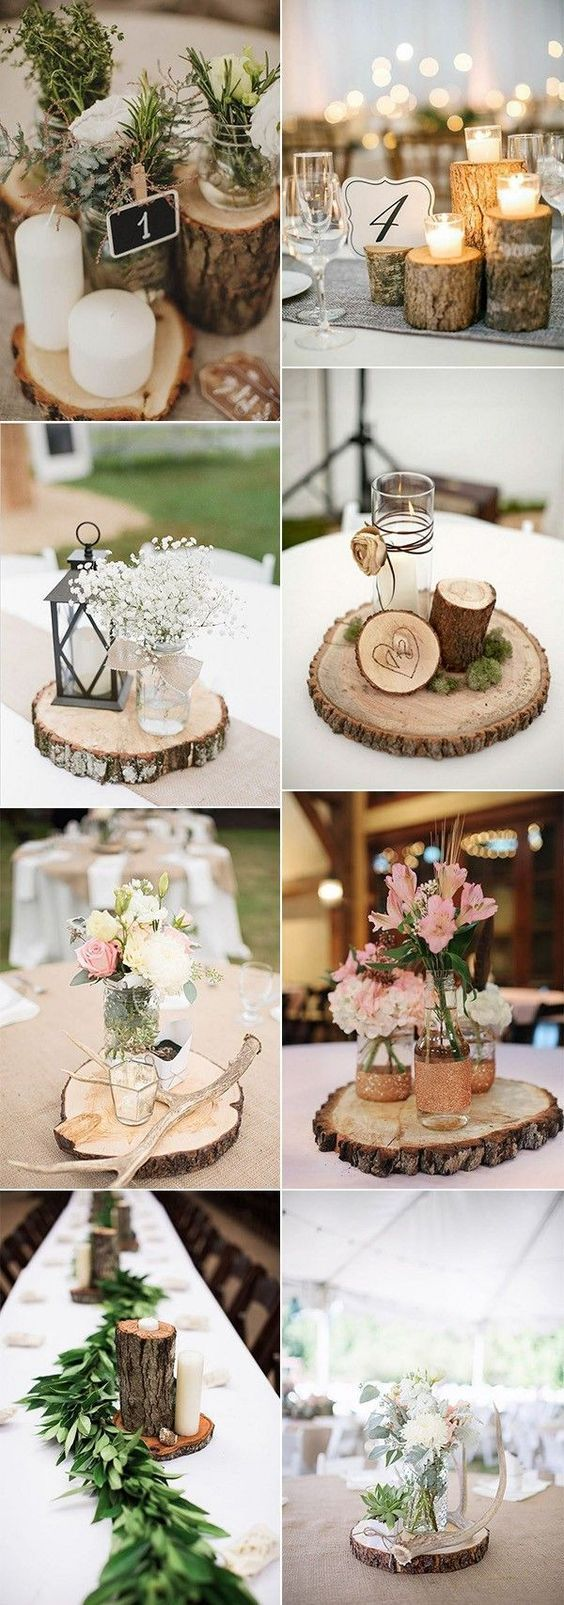 country rustic wedding centerpiece ideas with tree stumps #weddingideas #wedding…